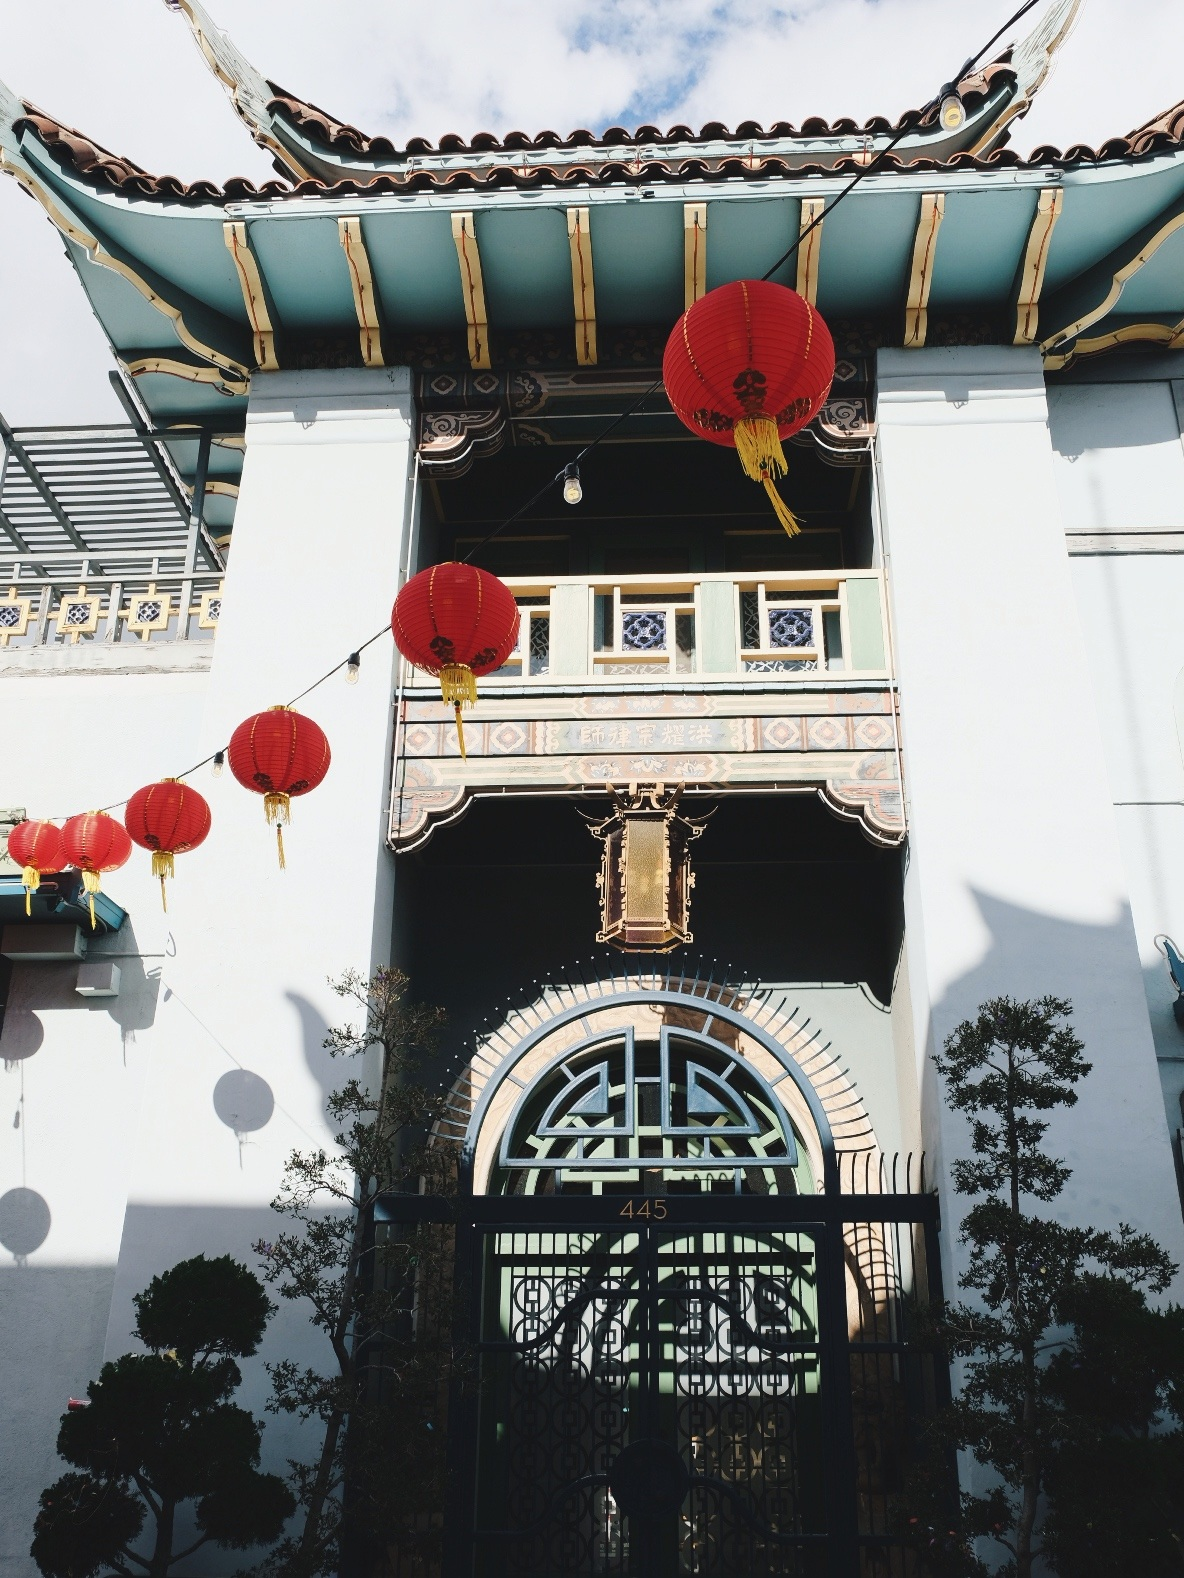 Blue building in Chinatown with string of red lanterns